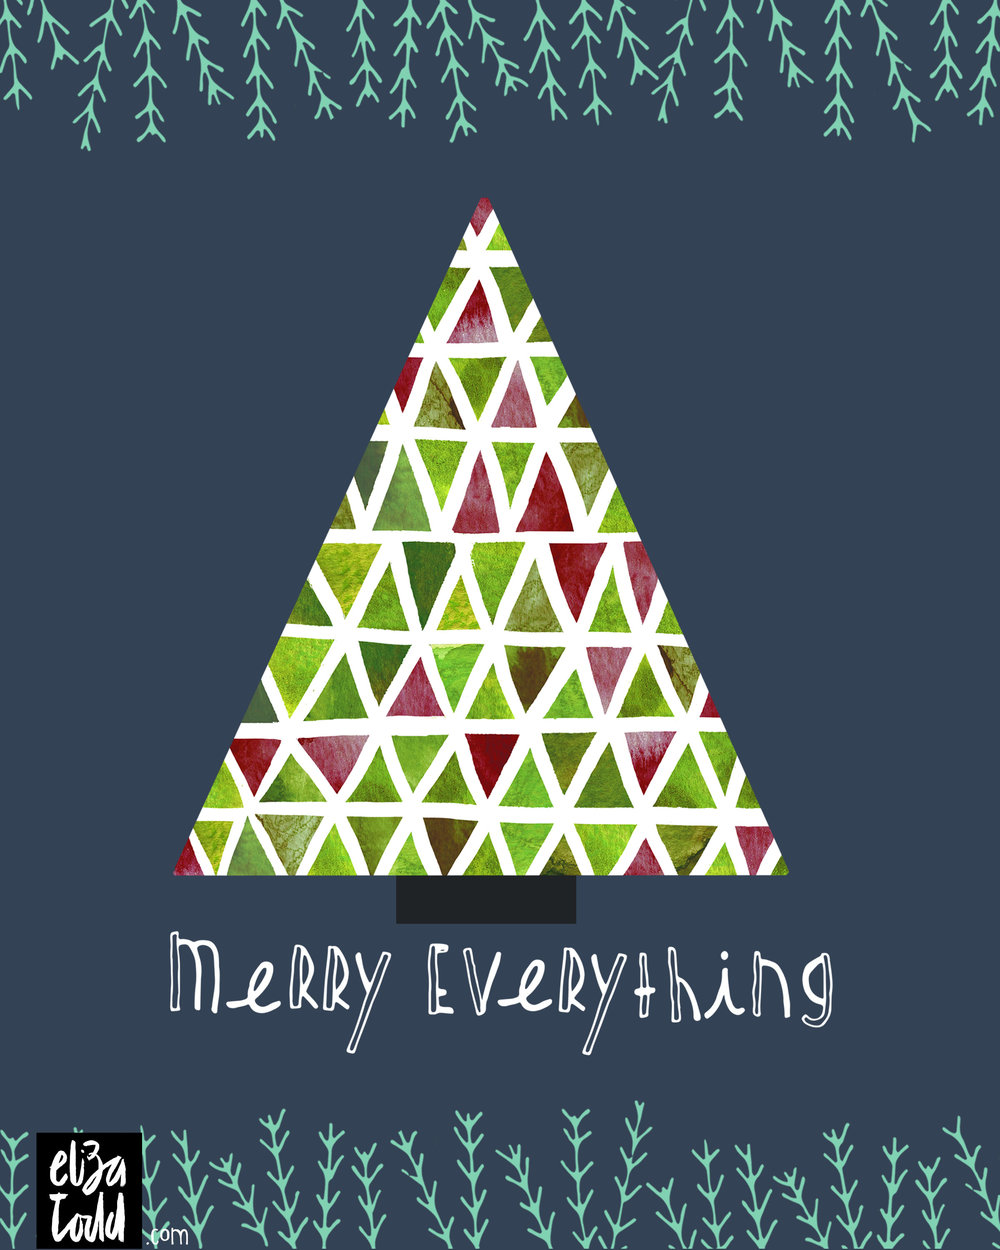 merry-everything-final.jpg